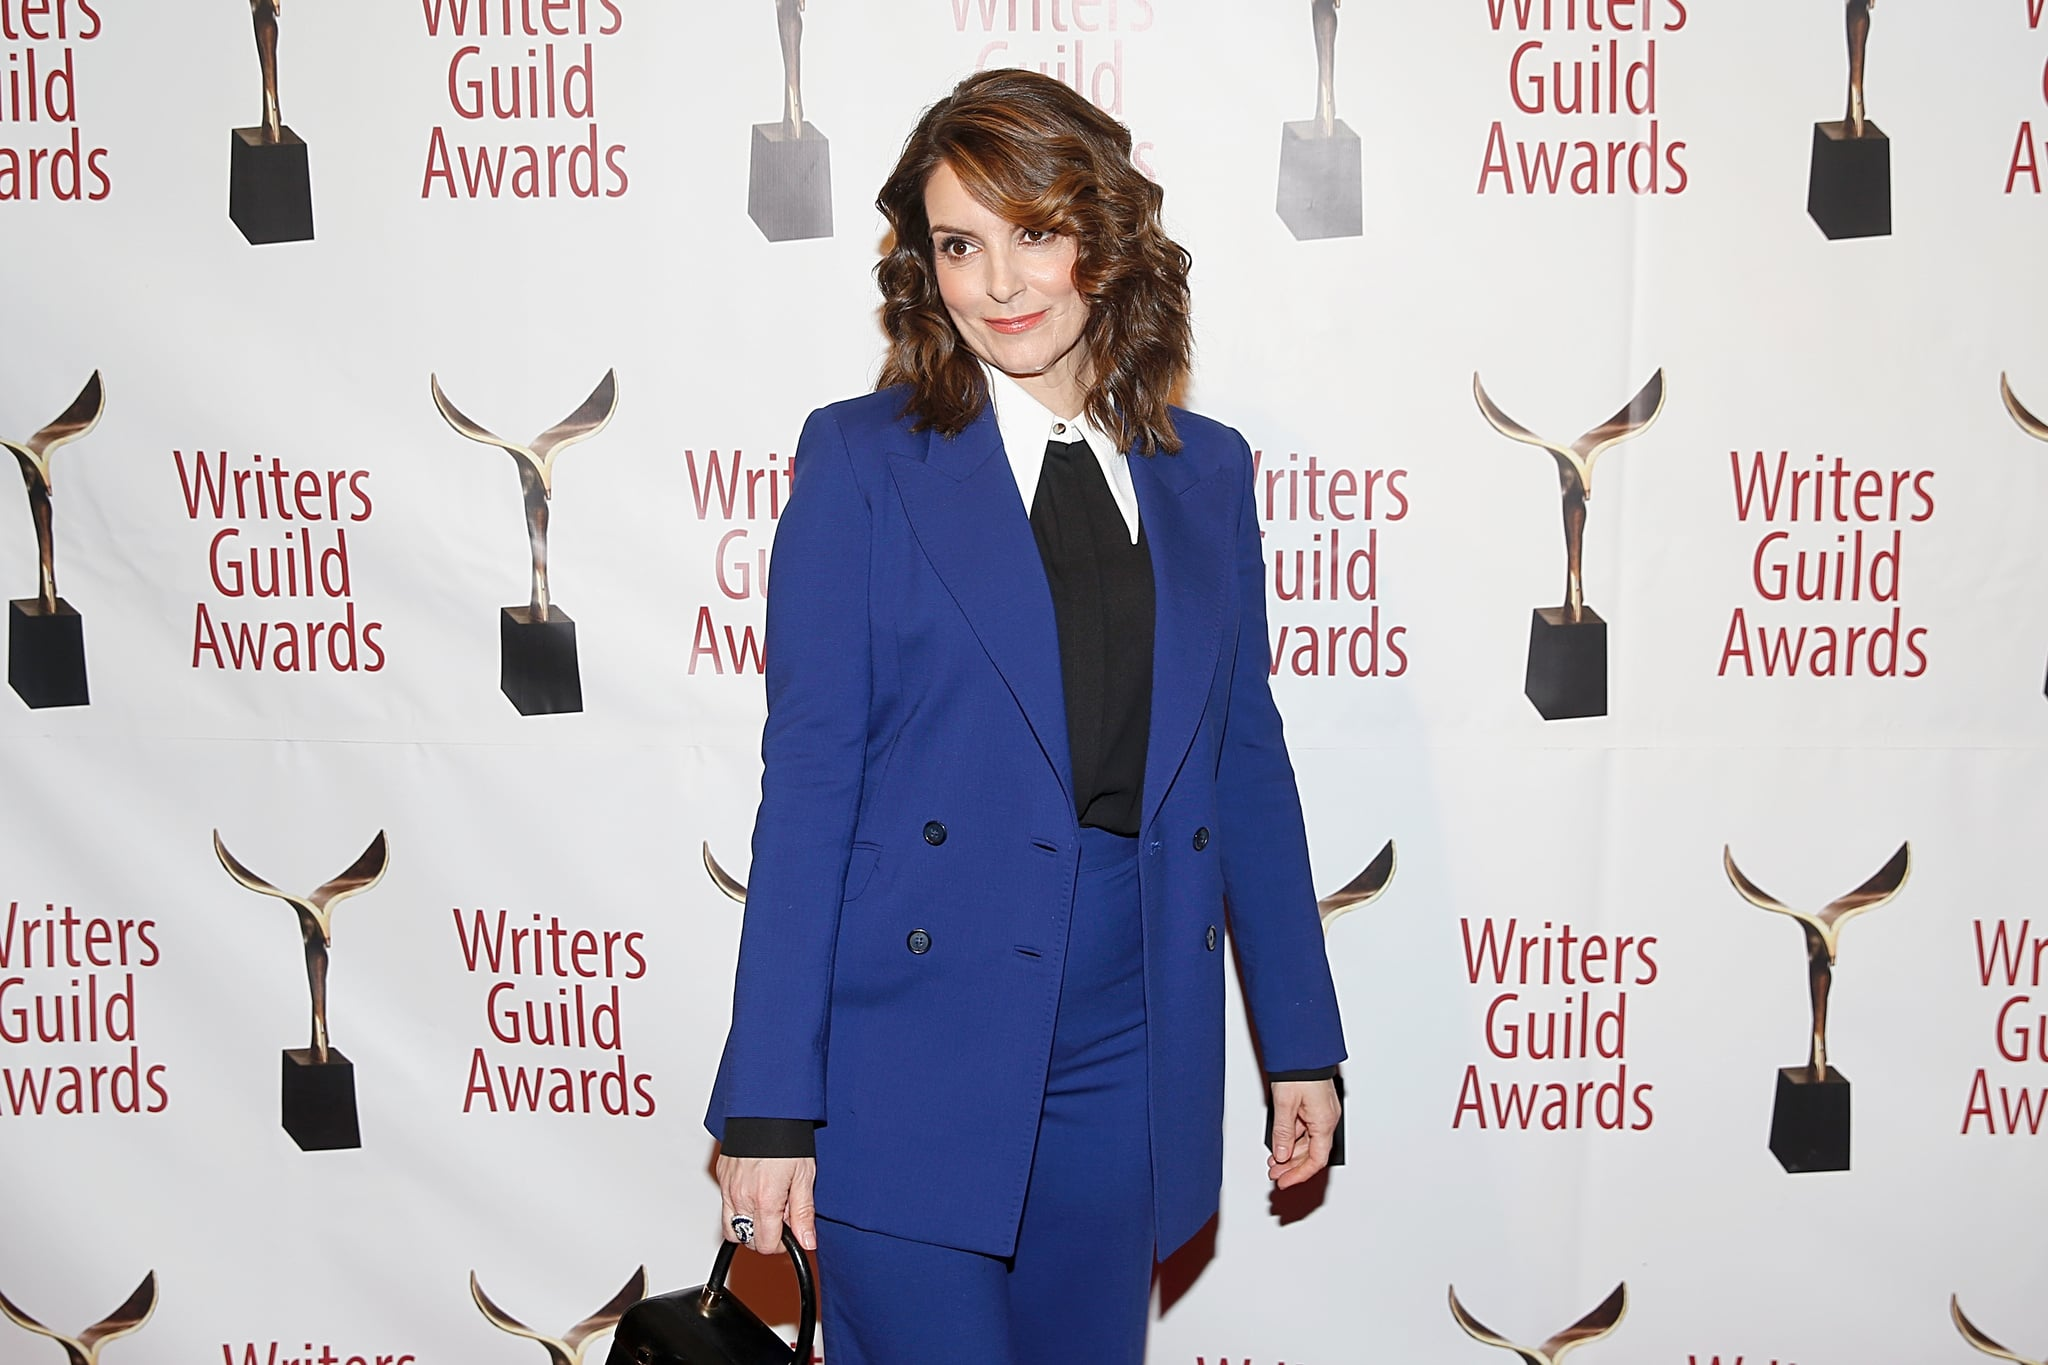 NEW YORK, NEW YORK - FEBRUARY 01: Tina Fey attends the 72nd Writers Guild Awards at Edison Ballroom on February 01, 2020 in New York City. (Photo by Dominik Bindl/WireImage)